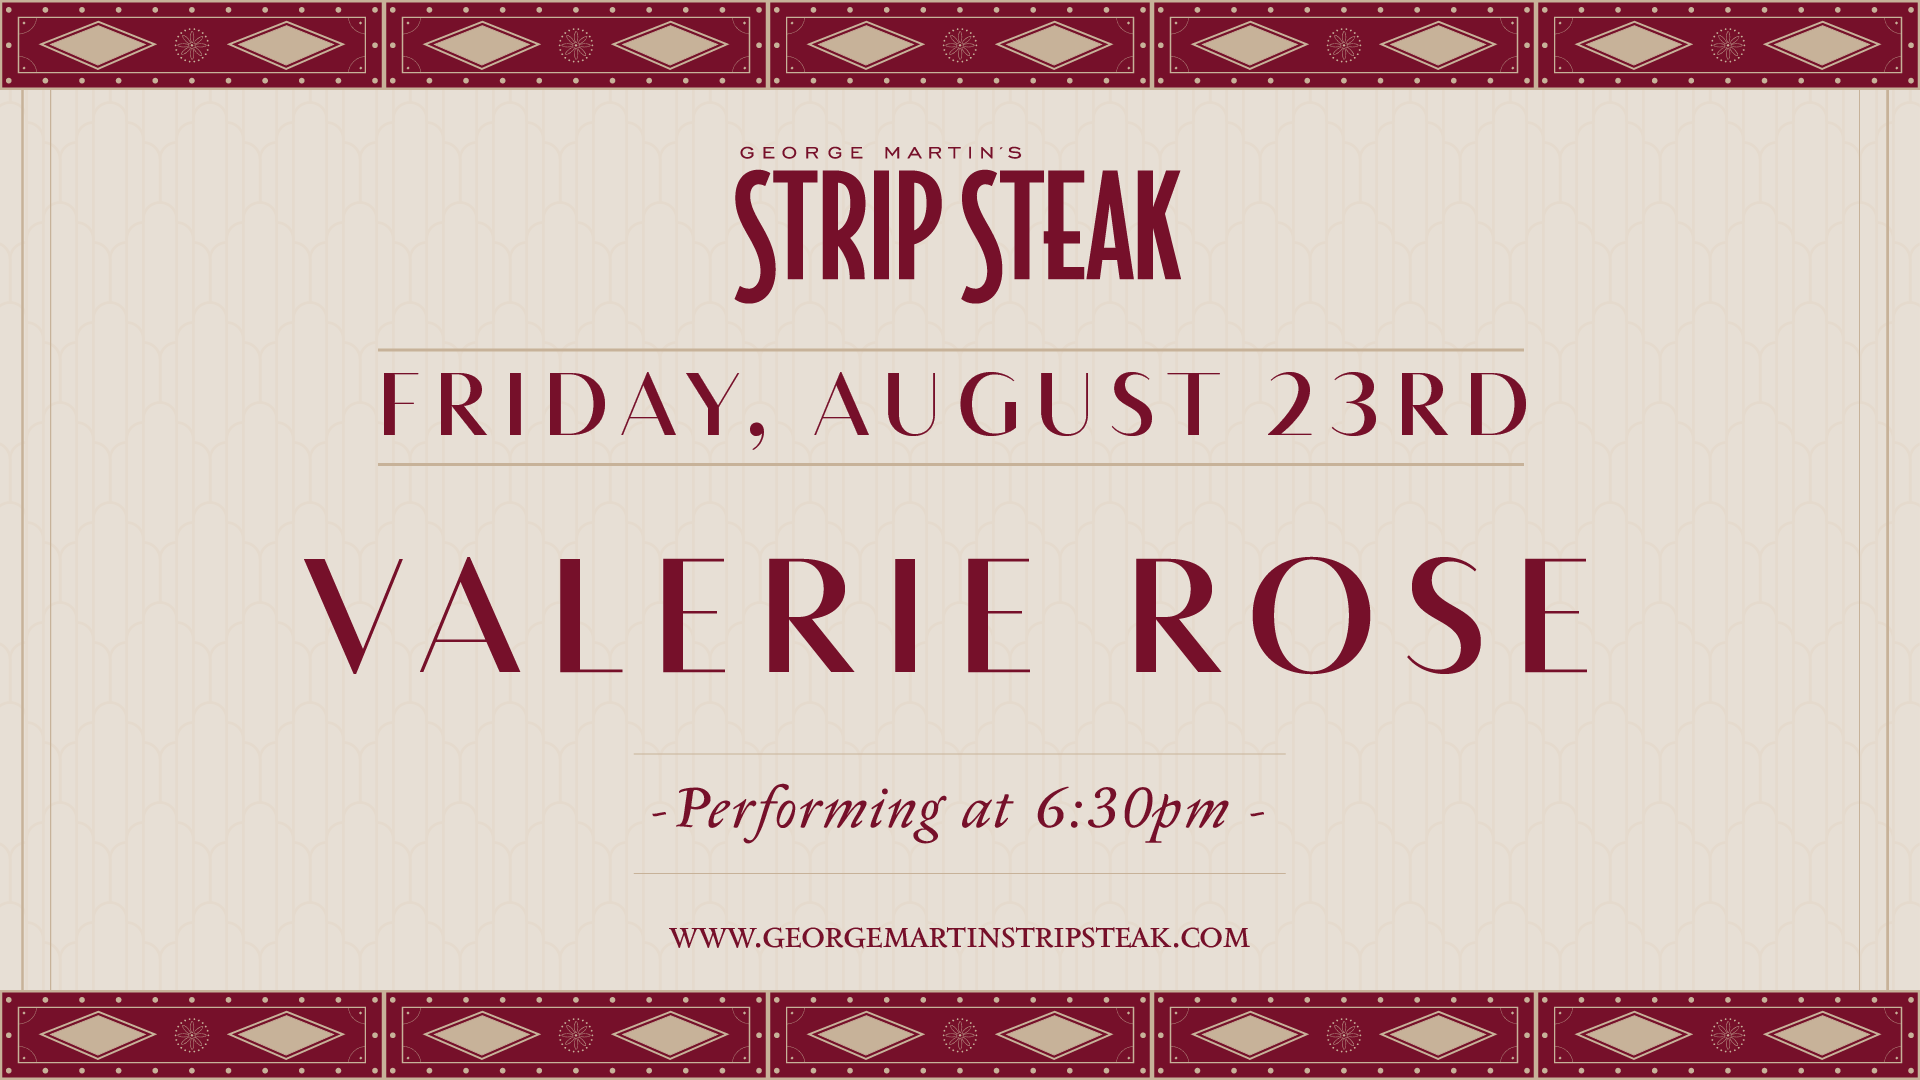 Flyer for live music with Valerie Rose on August 23rd at 6:30pm